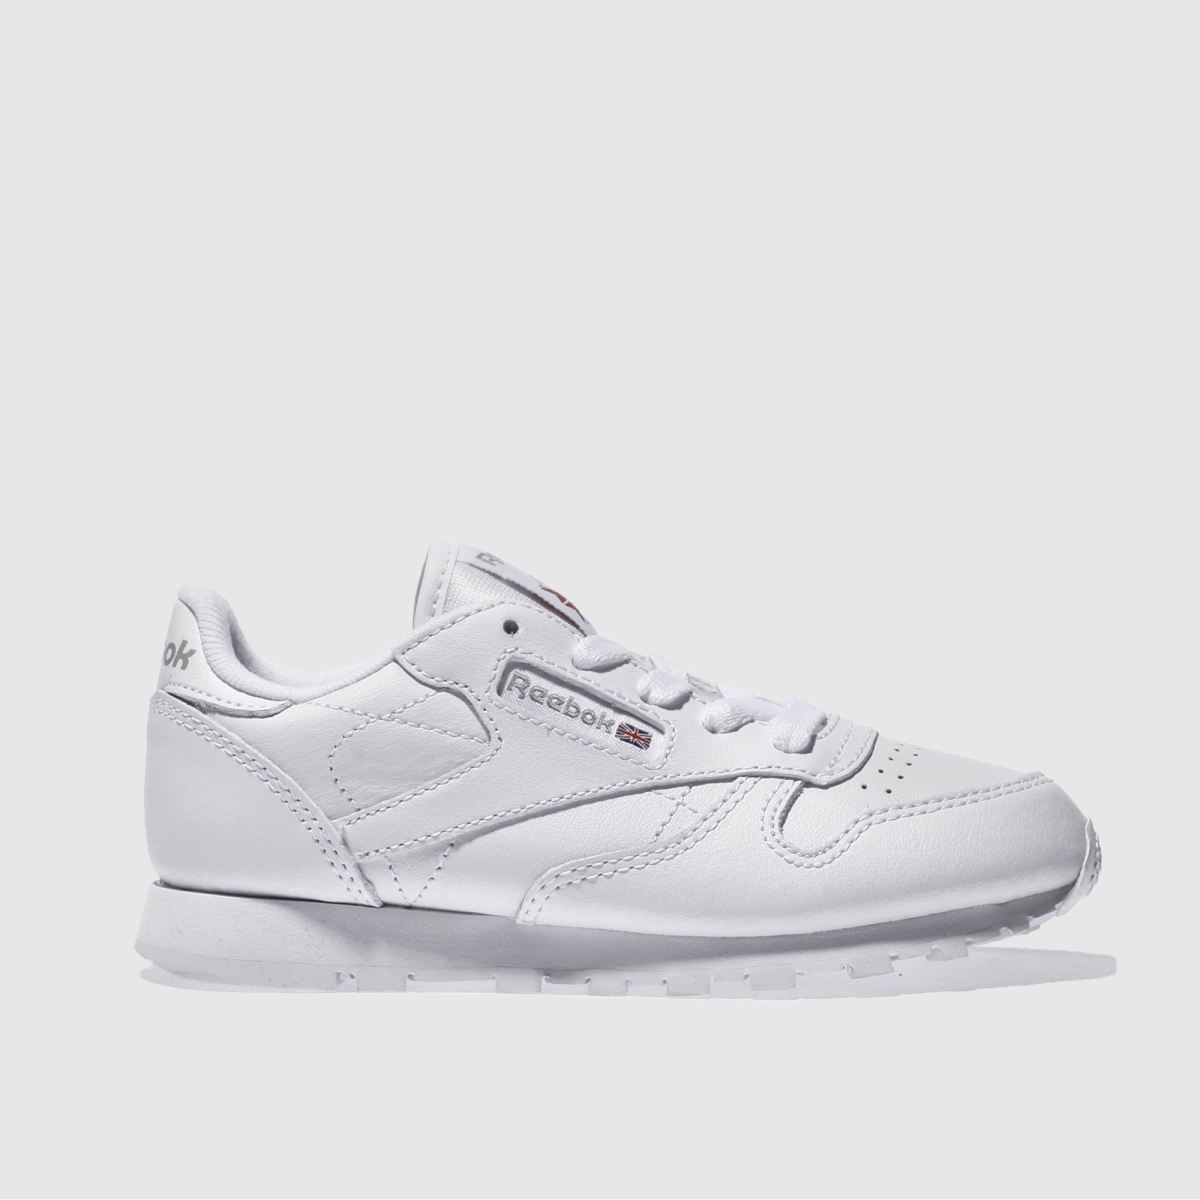 d68dfe7a45692 Reebok White Classic Leather Trainers Junior - Schuh at Westquay - Shop  Online